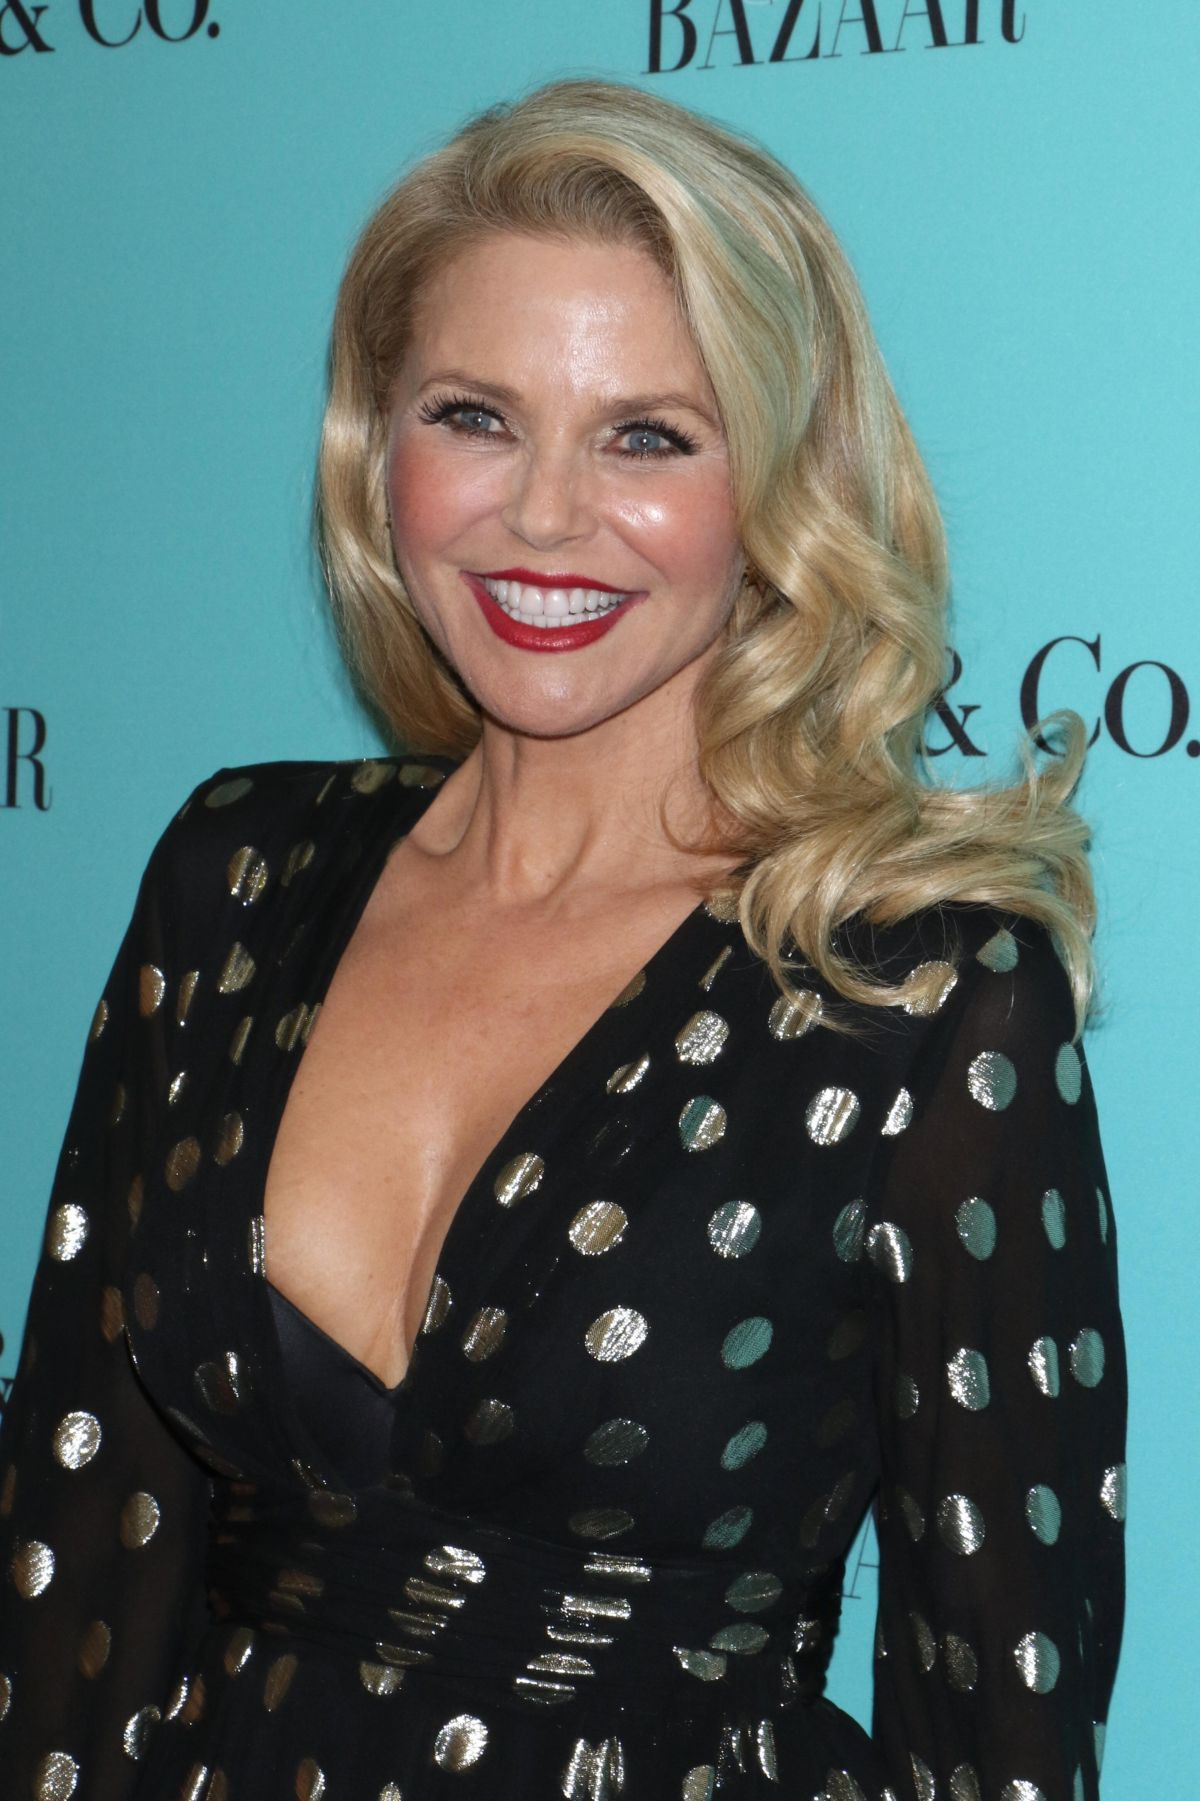 Christie Brinkley At 150 Years of Women, Fashion and New York Celebration in NY   christie-brinkley-at-150-years-of-women-fashion-and-new-york-celebration-in-ny_4